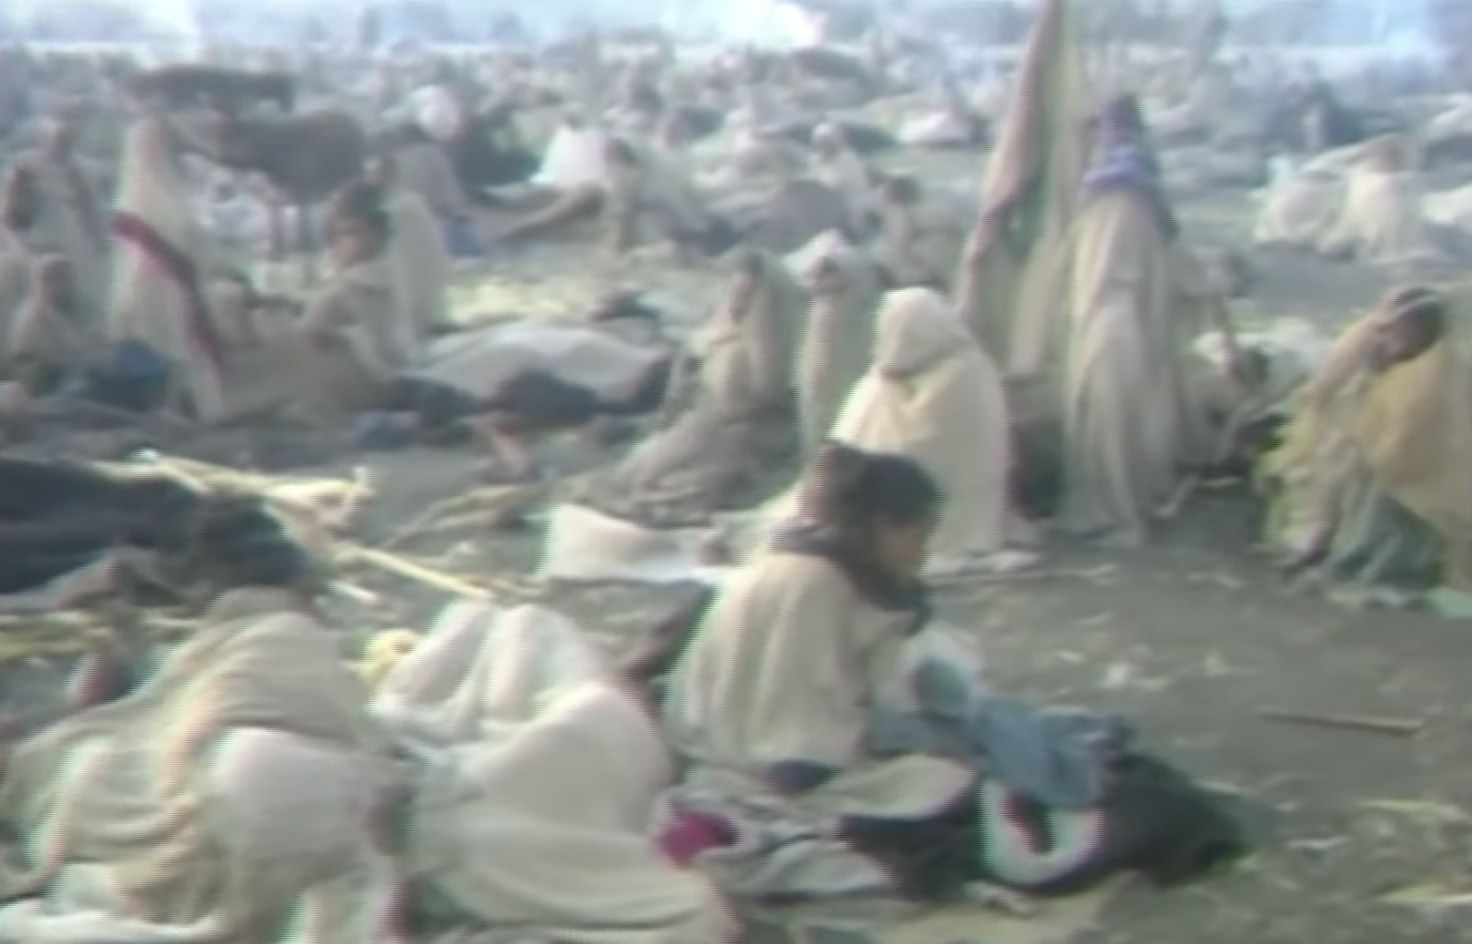 DISASTER: Close-up television coverage of the mid-80s famine in Ethiopia shocked the world